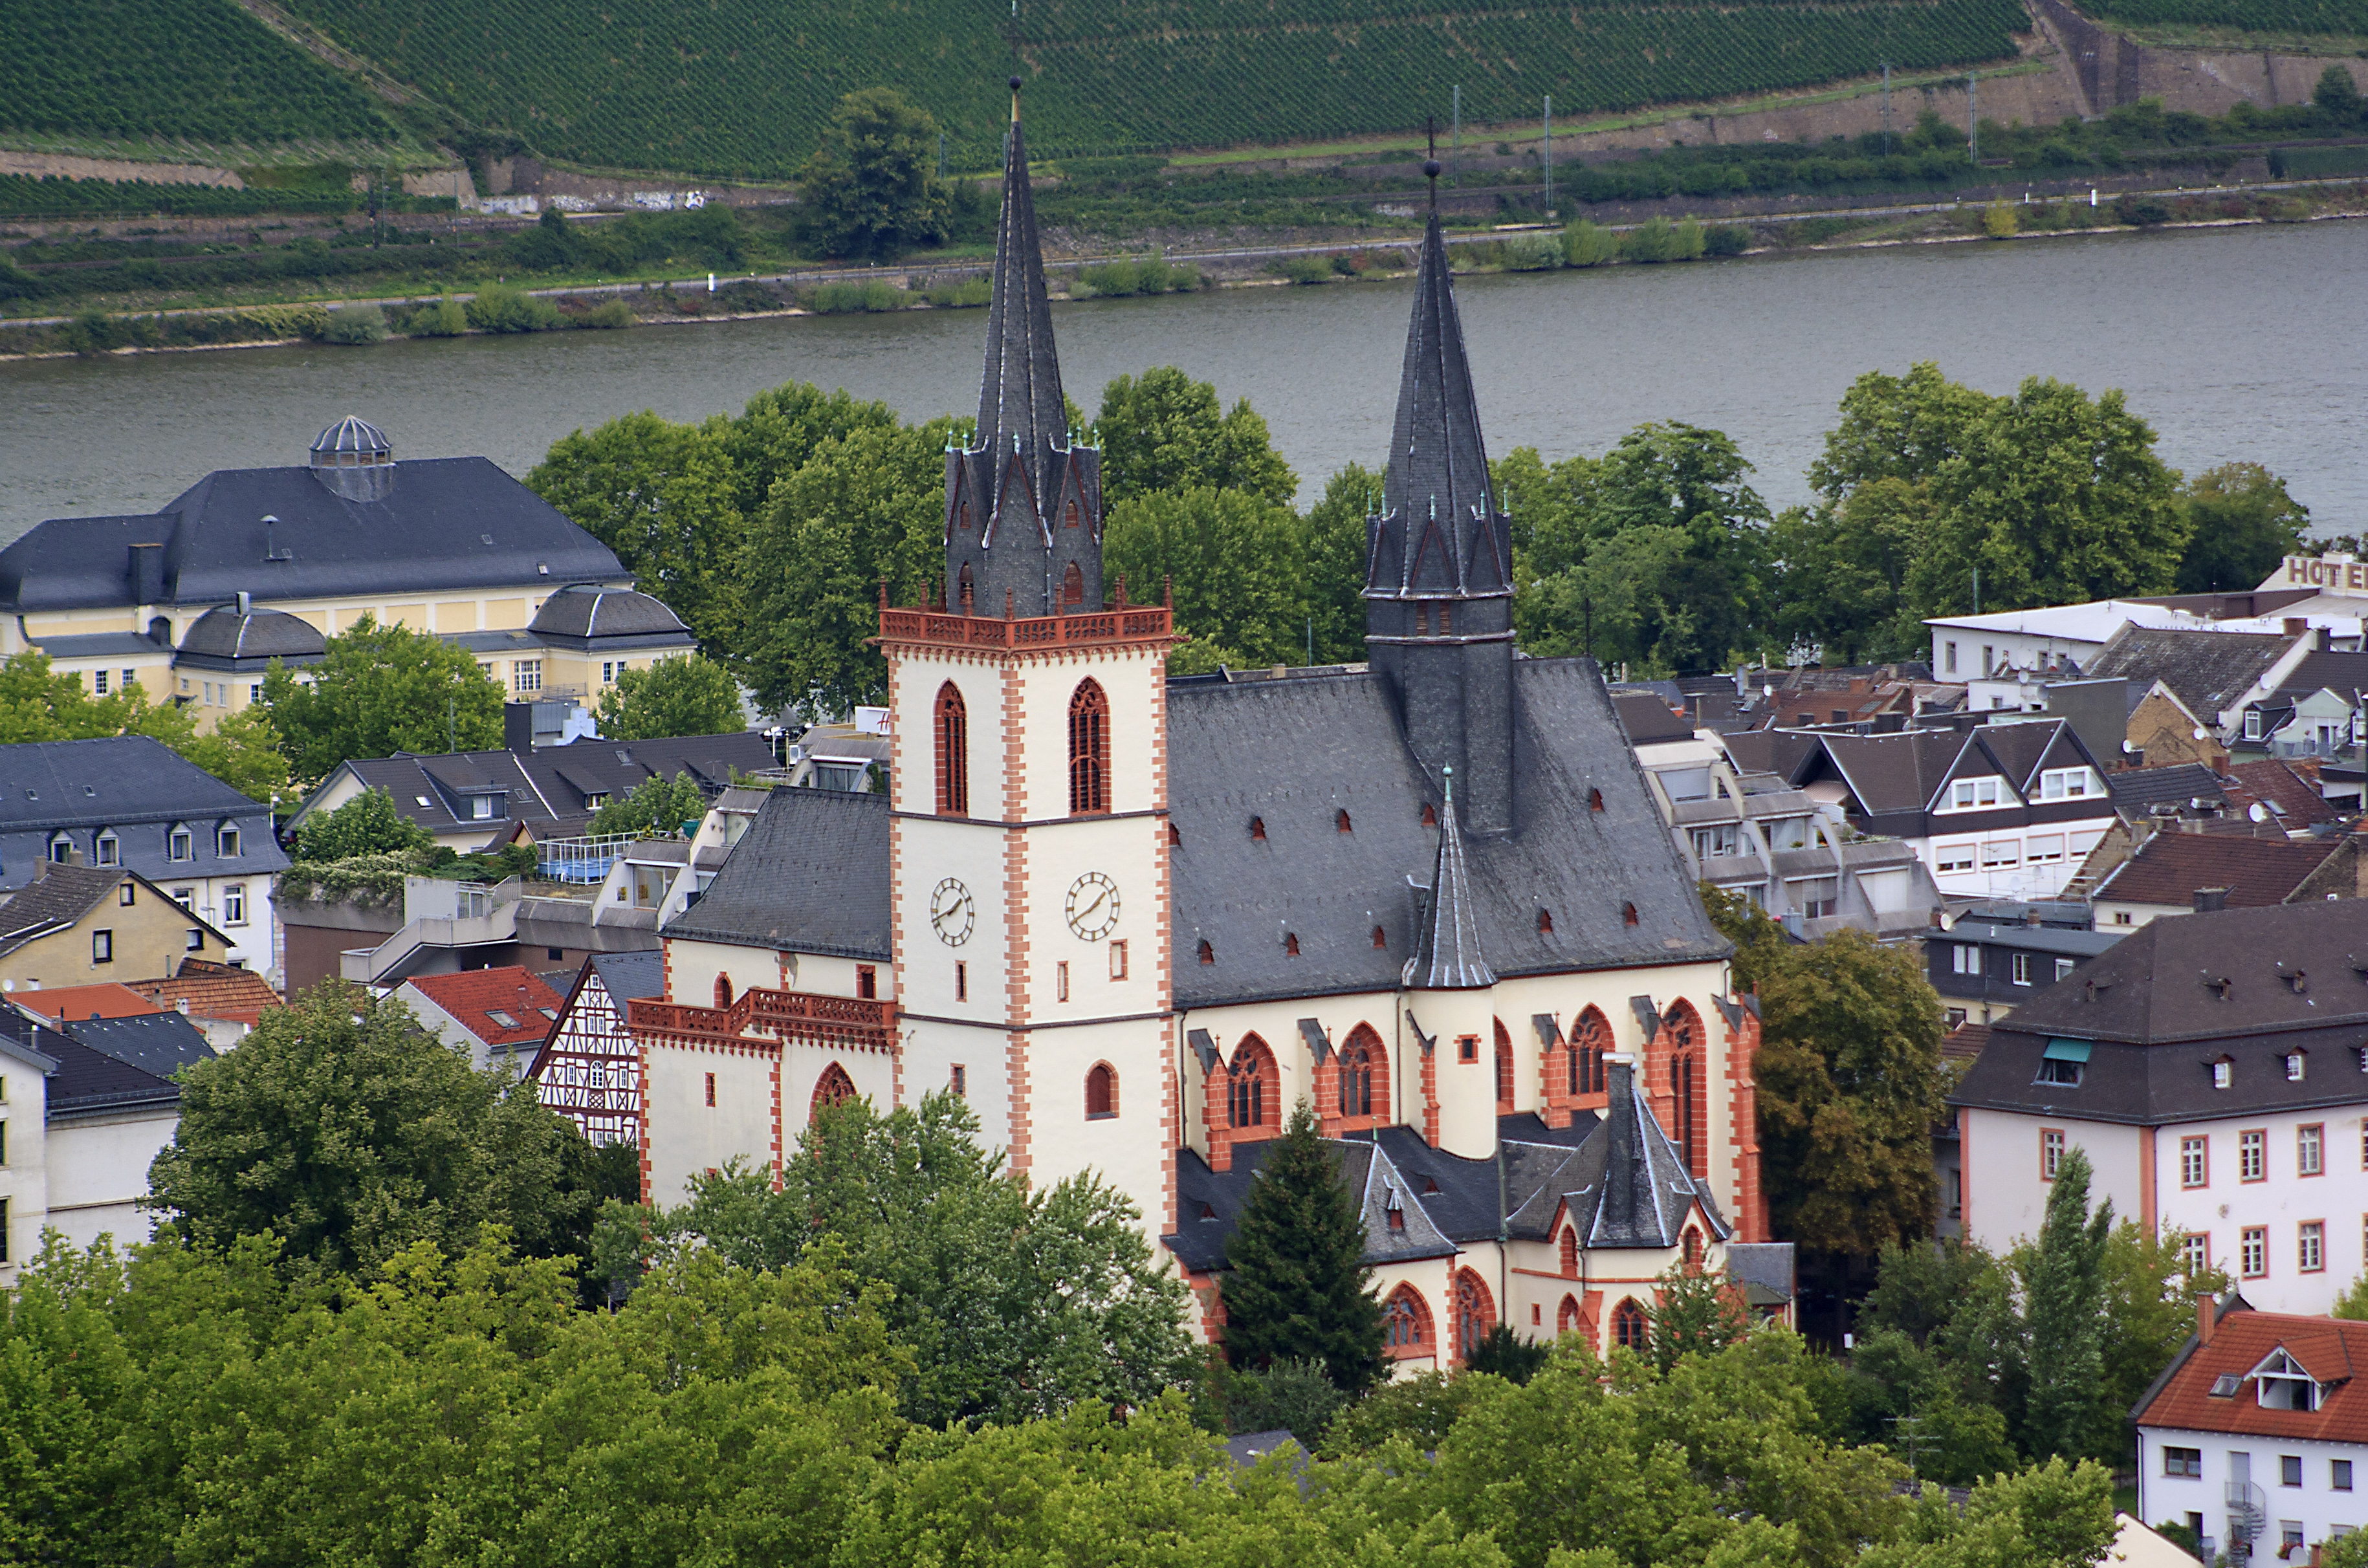 Bingen am Rhein Germany  City pictures : Bingen Basilika St. Martin 20100826 Wikimedia Commons